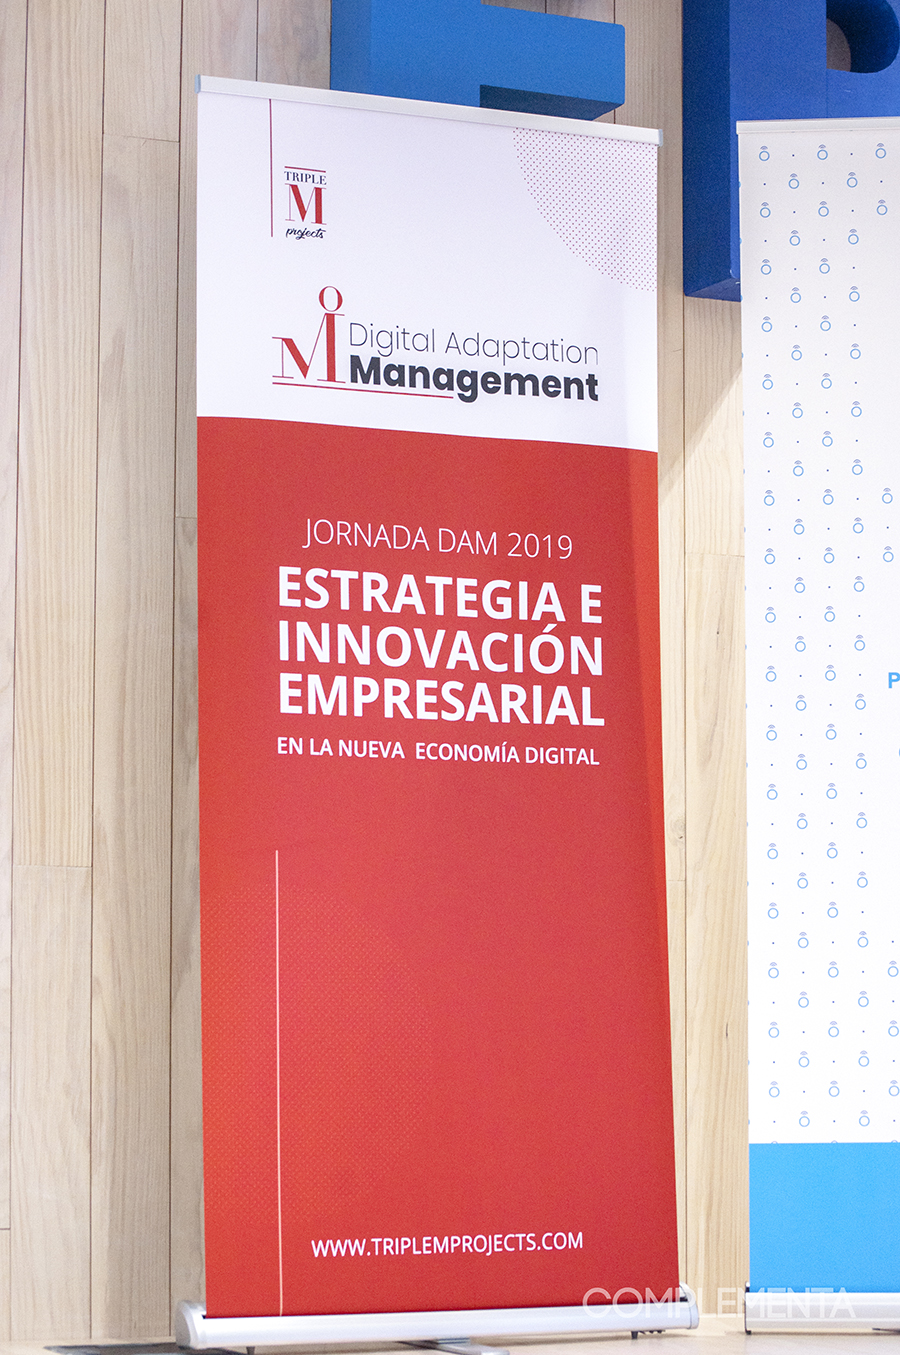 Fotografía del Evento cedida por Complementa Alternativa S.L. Muestra el Roll Up.